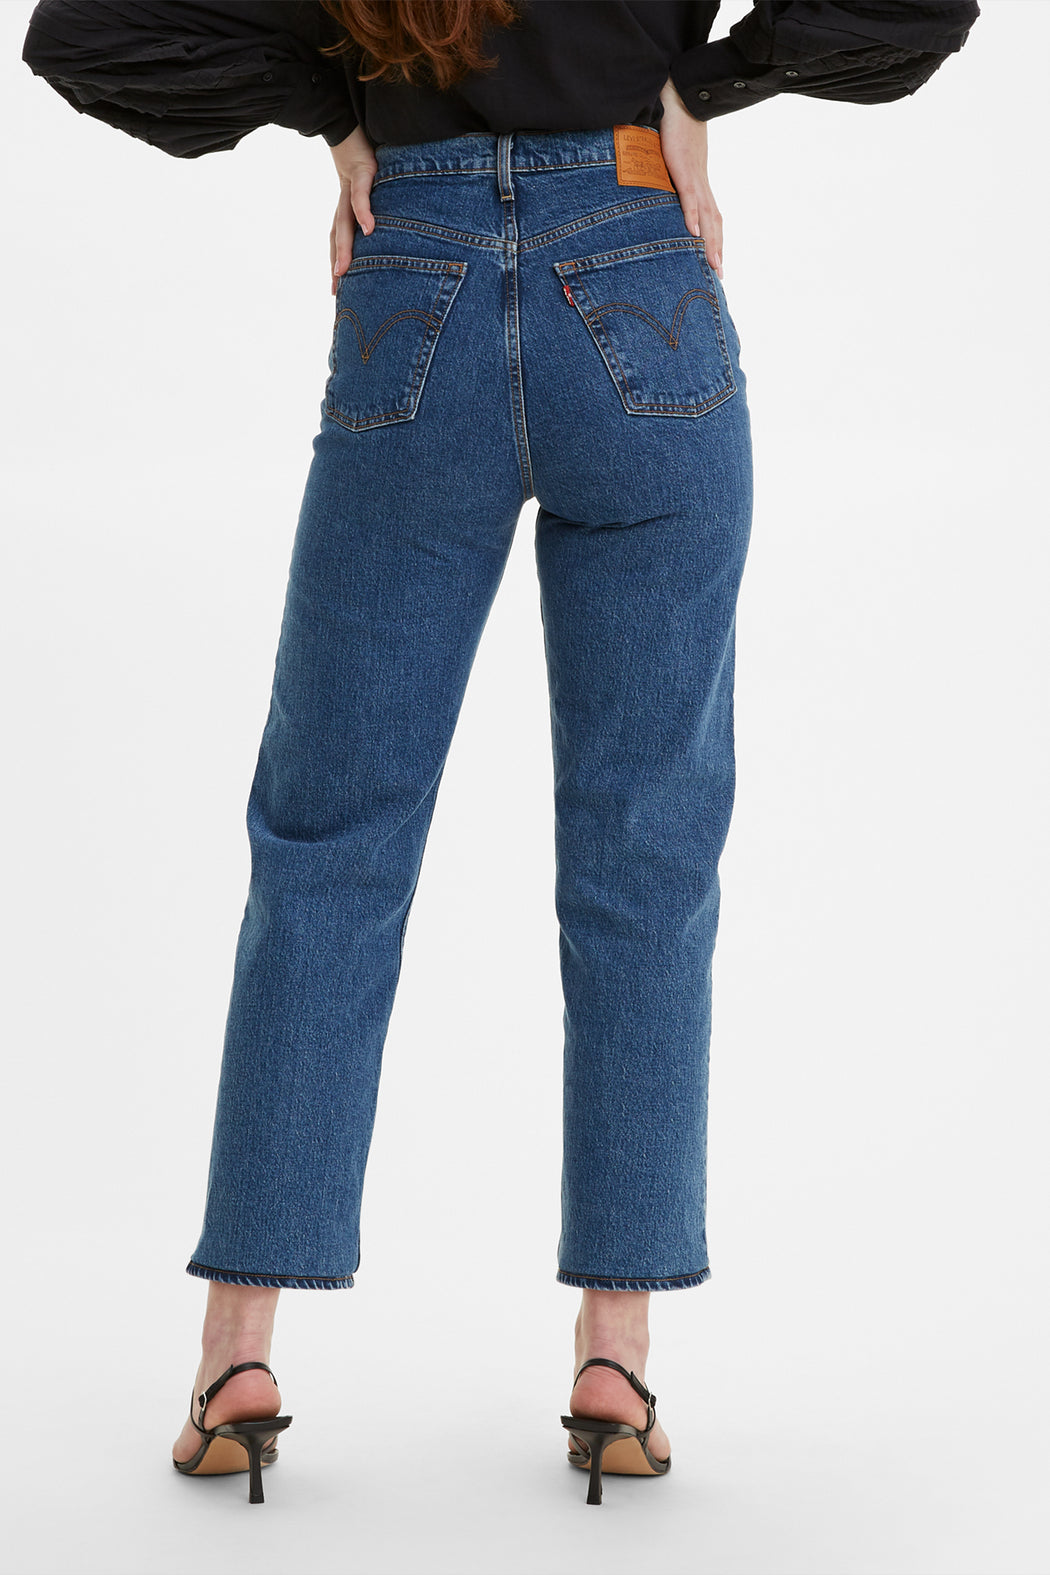 Ribcage Straight Ankle Jean